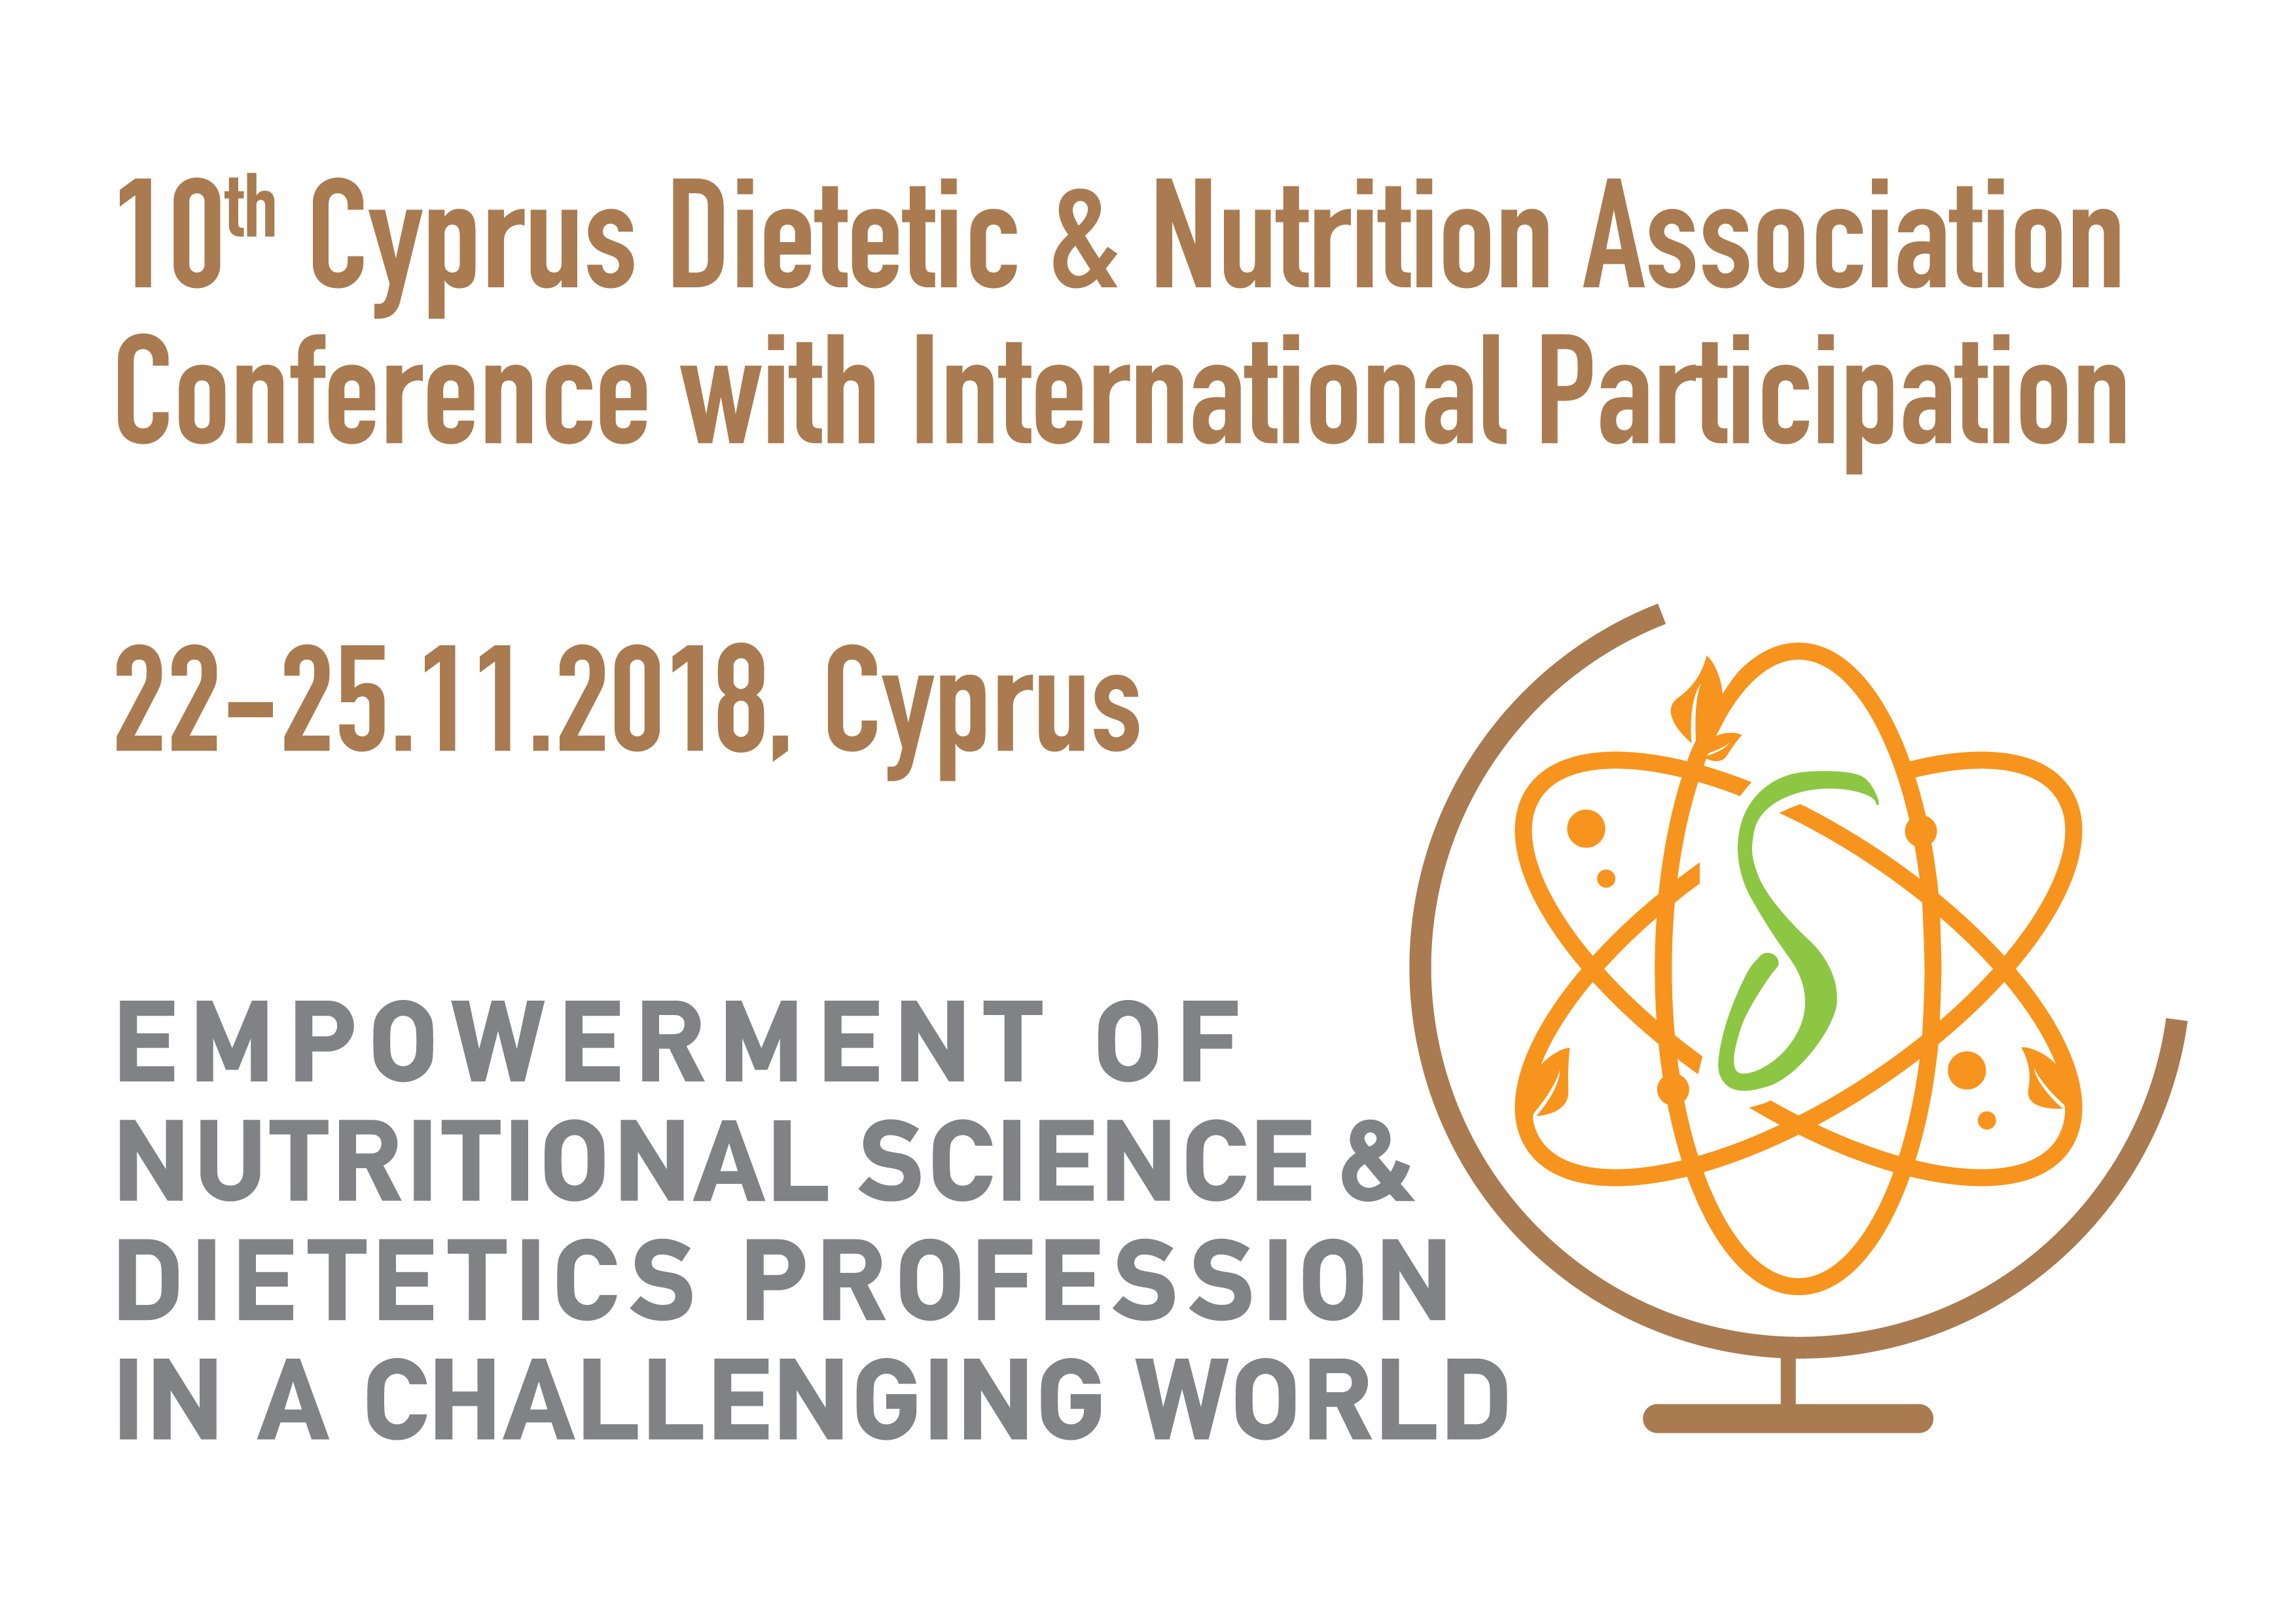 cydna-10th-conference-logo-title-01